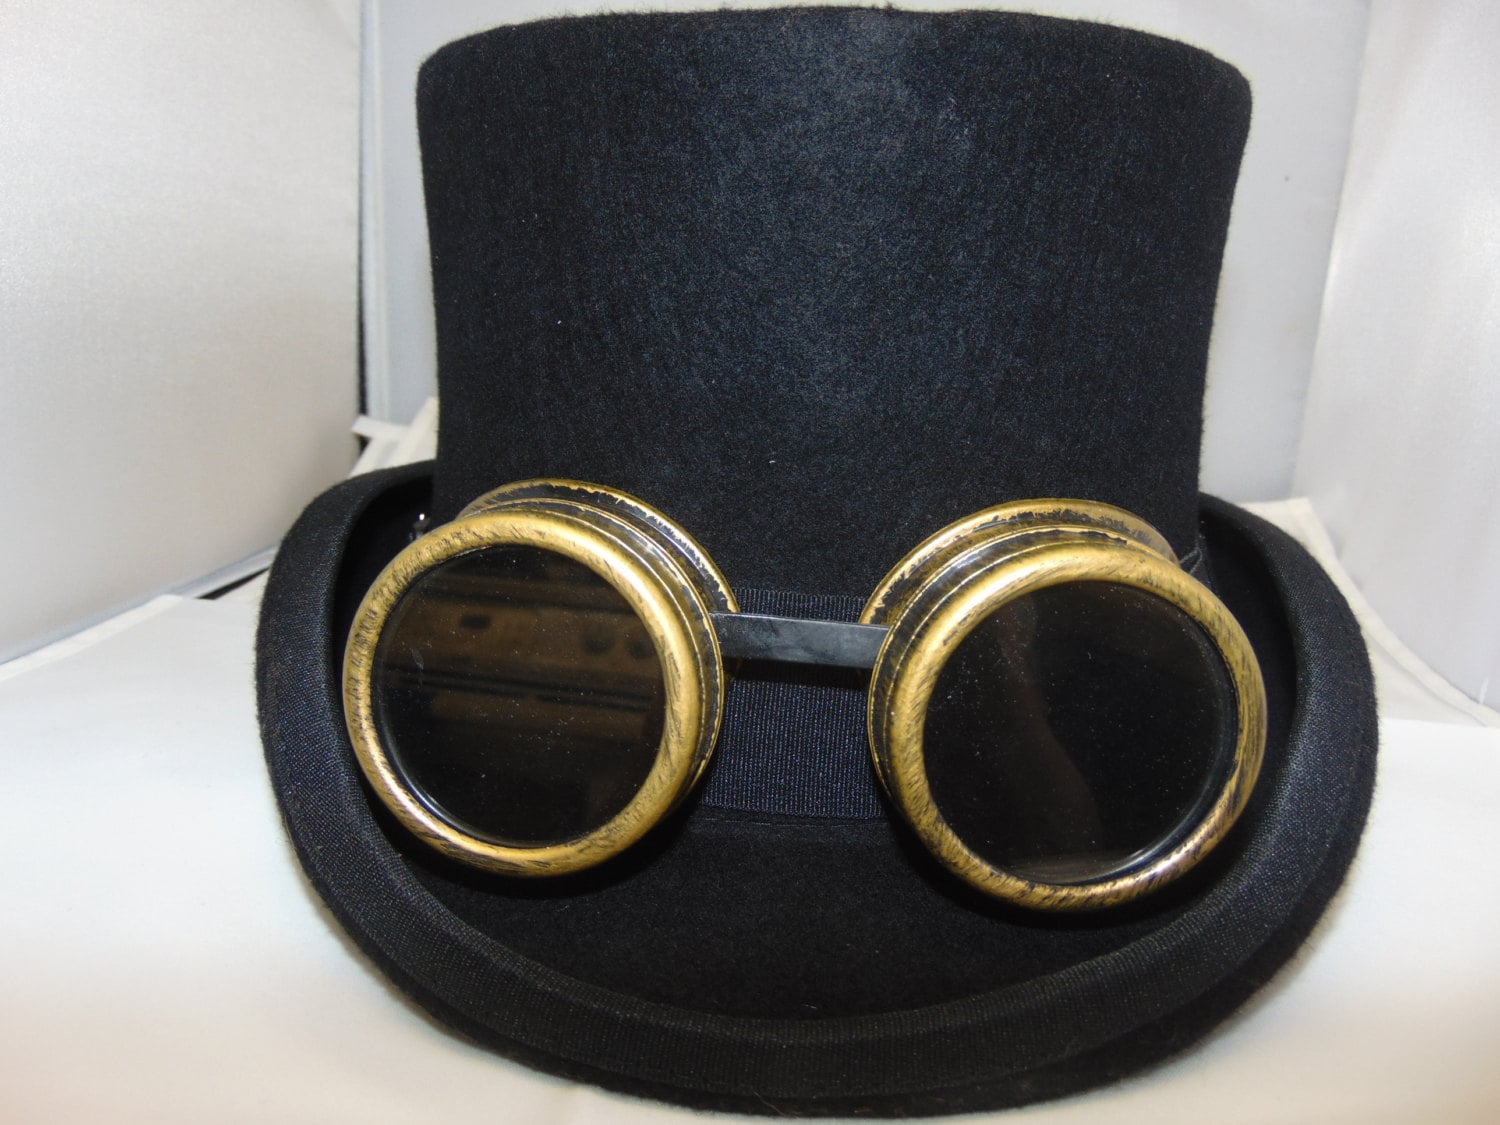 Wool Steampunk Goggles Unisex Top Hat by Thehatzmeow on Etsy